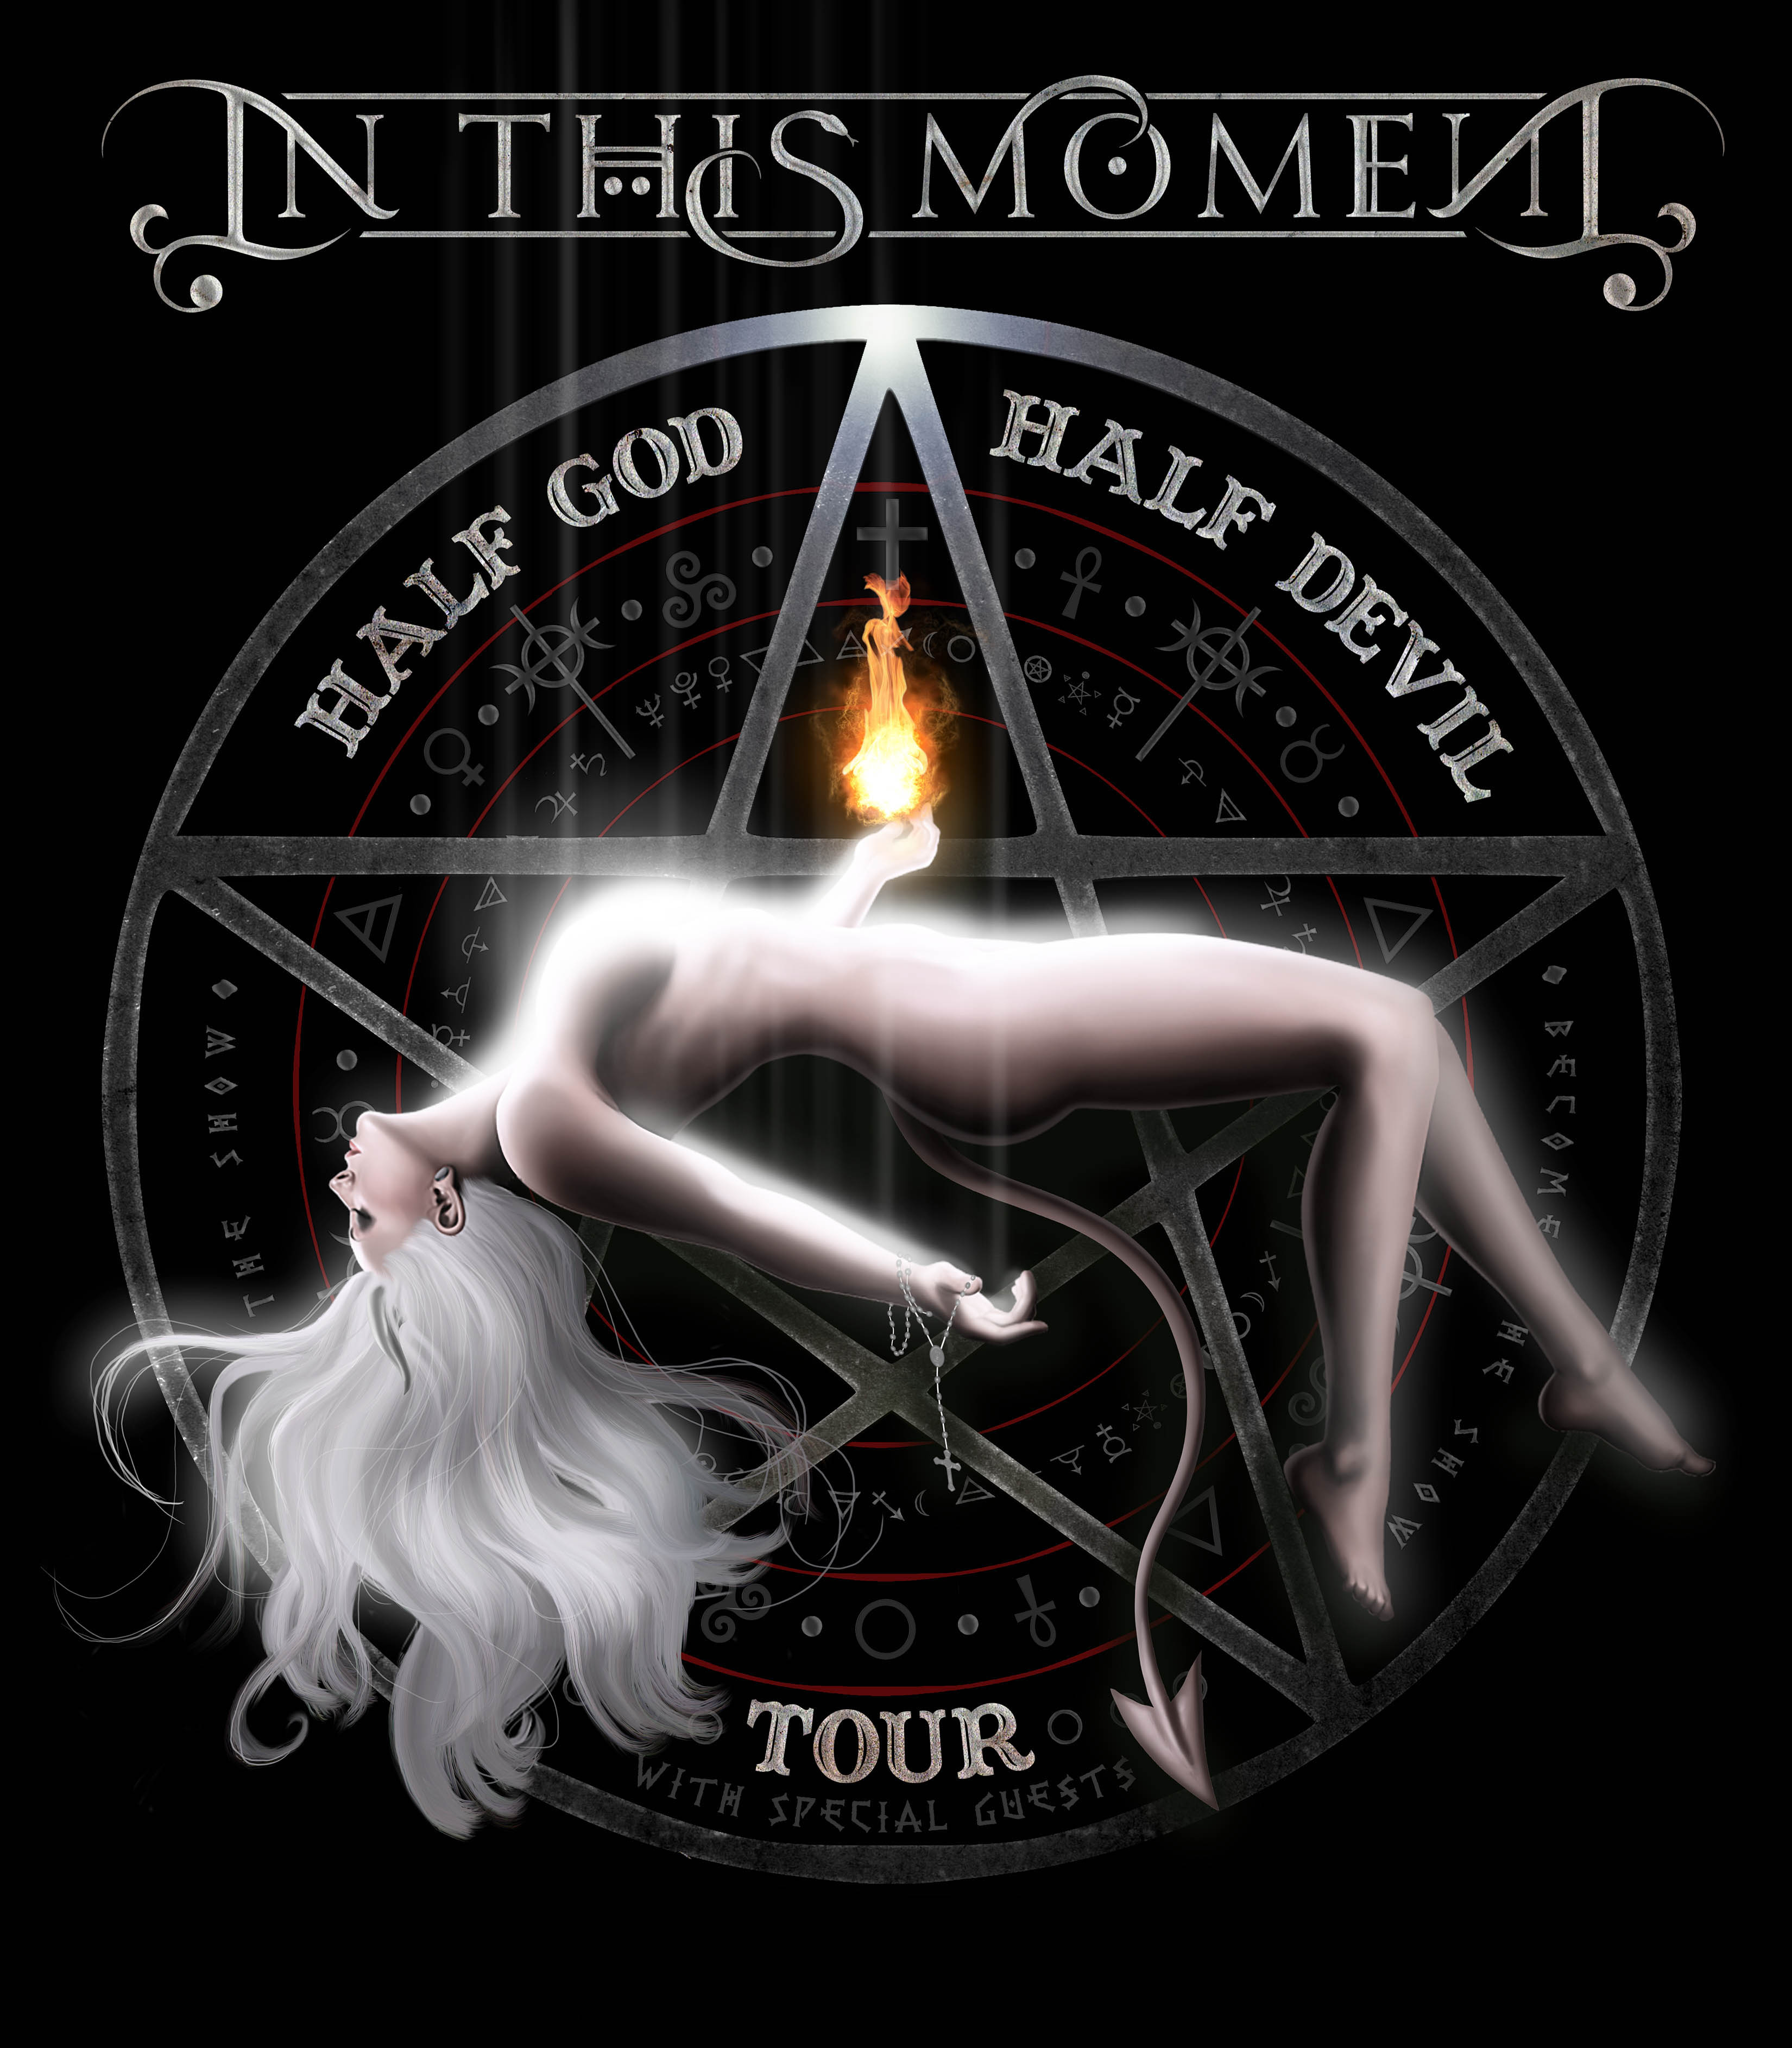 In This Moment Tour Poster by Age-Velez